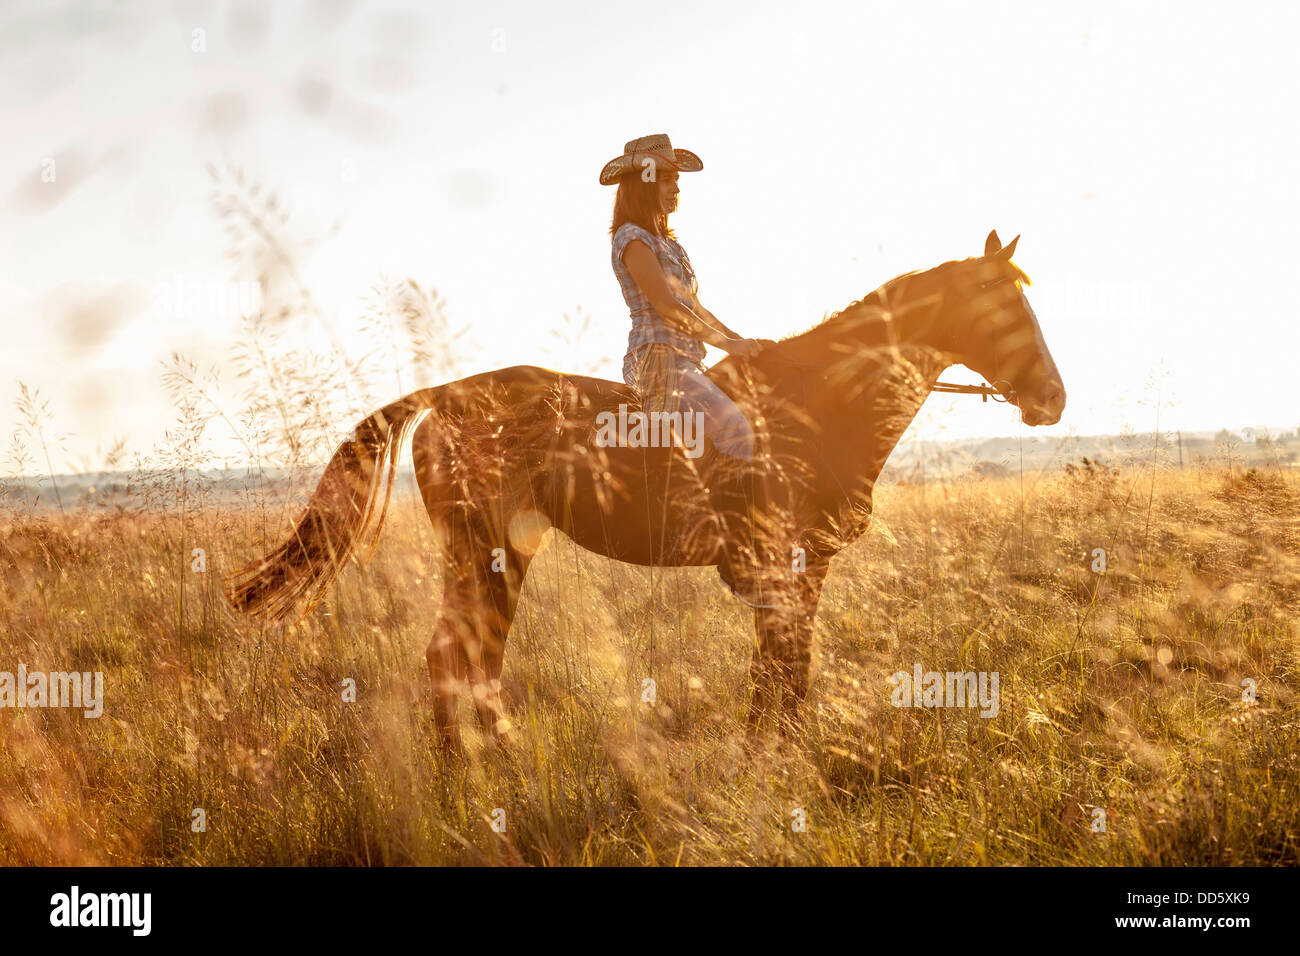 Croatia, Dalmatia, Young woman horseback riding - Stock Image